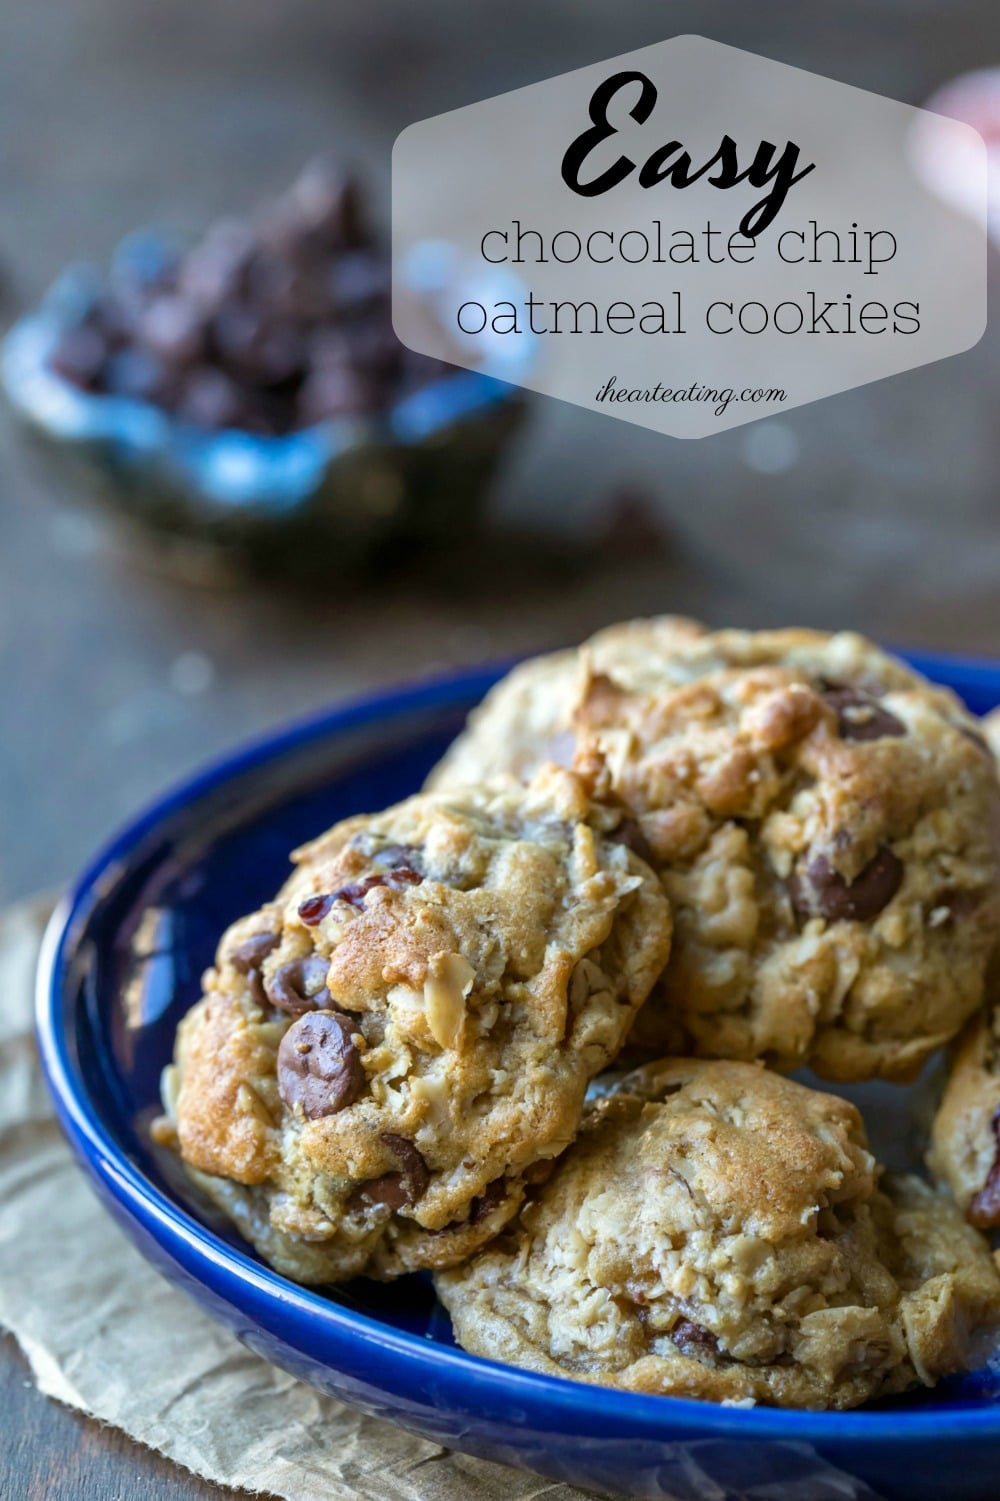 Simple homemade oatmeal cookie recipe that makes thick, soft oatmeal cookies with chewy edges. These easy chocolate chip oatmeal cookies are made in one bowl and are made without white sugar. #oatmeal #chocolatechip #cookies #recipe #best #dessert